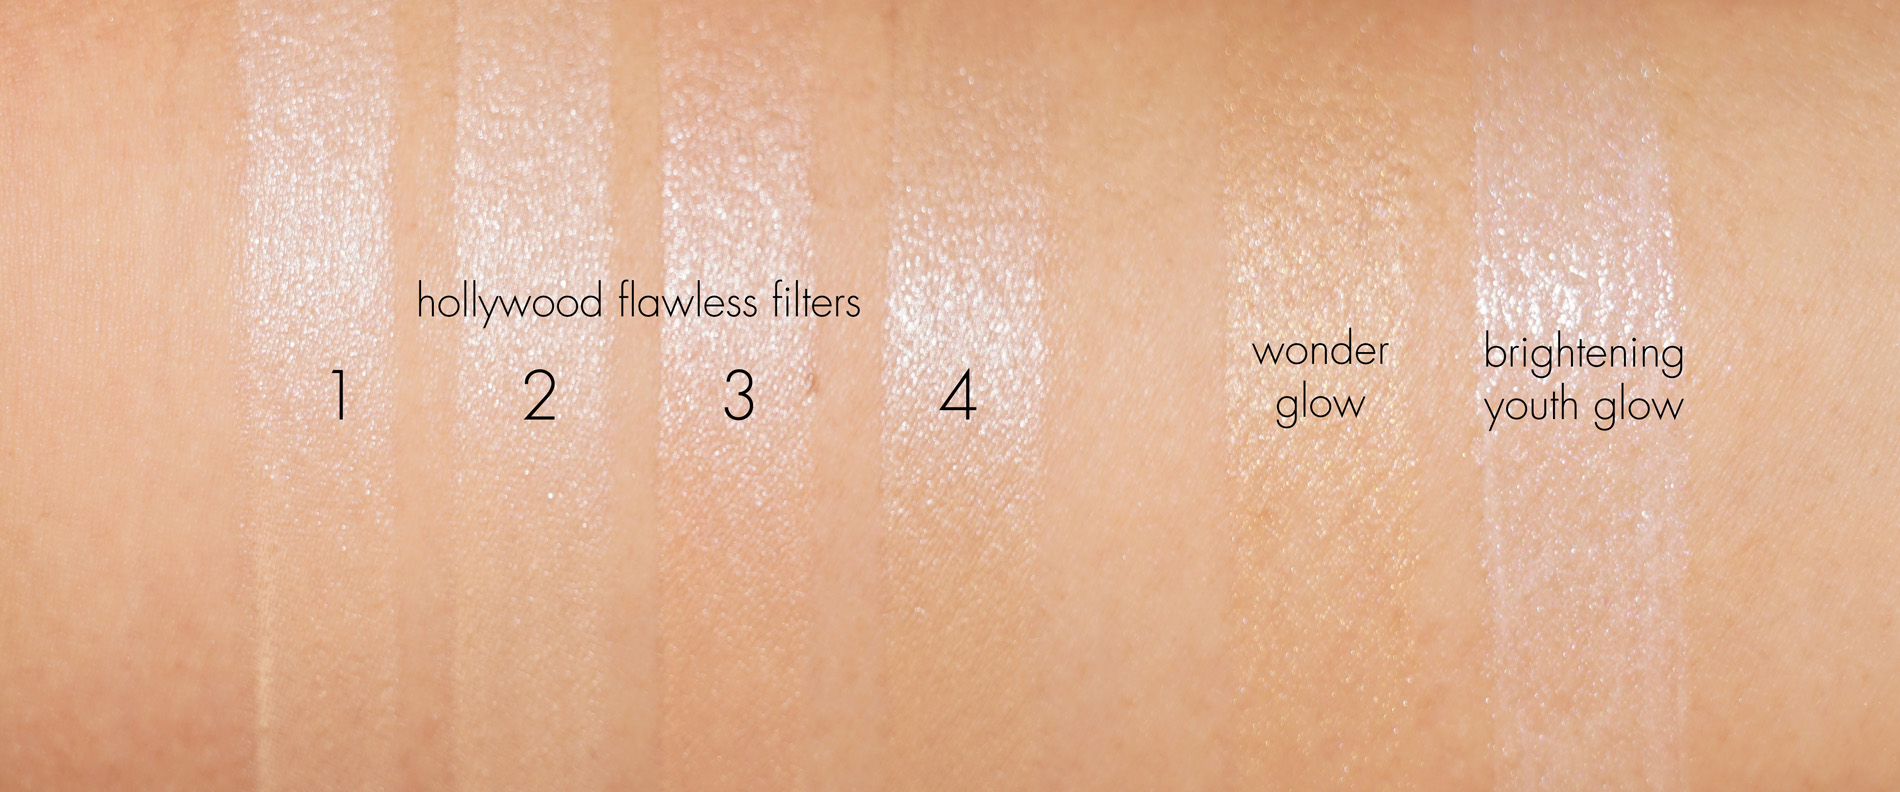 Hollywood Flawless Filter by Charlotte Tilbury #7